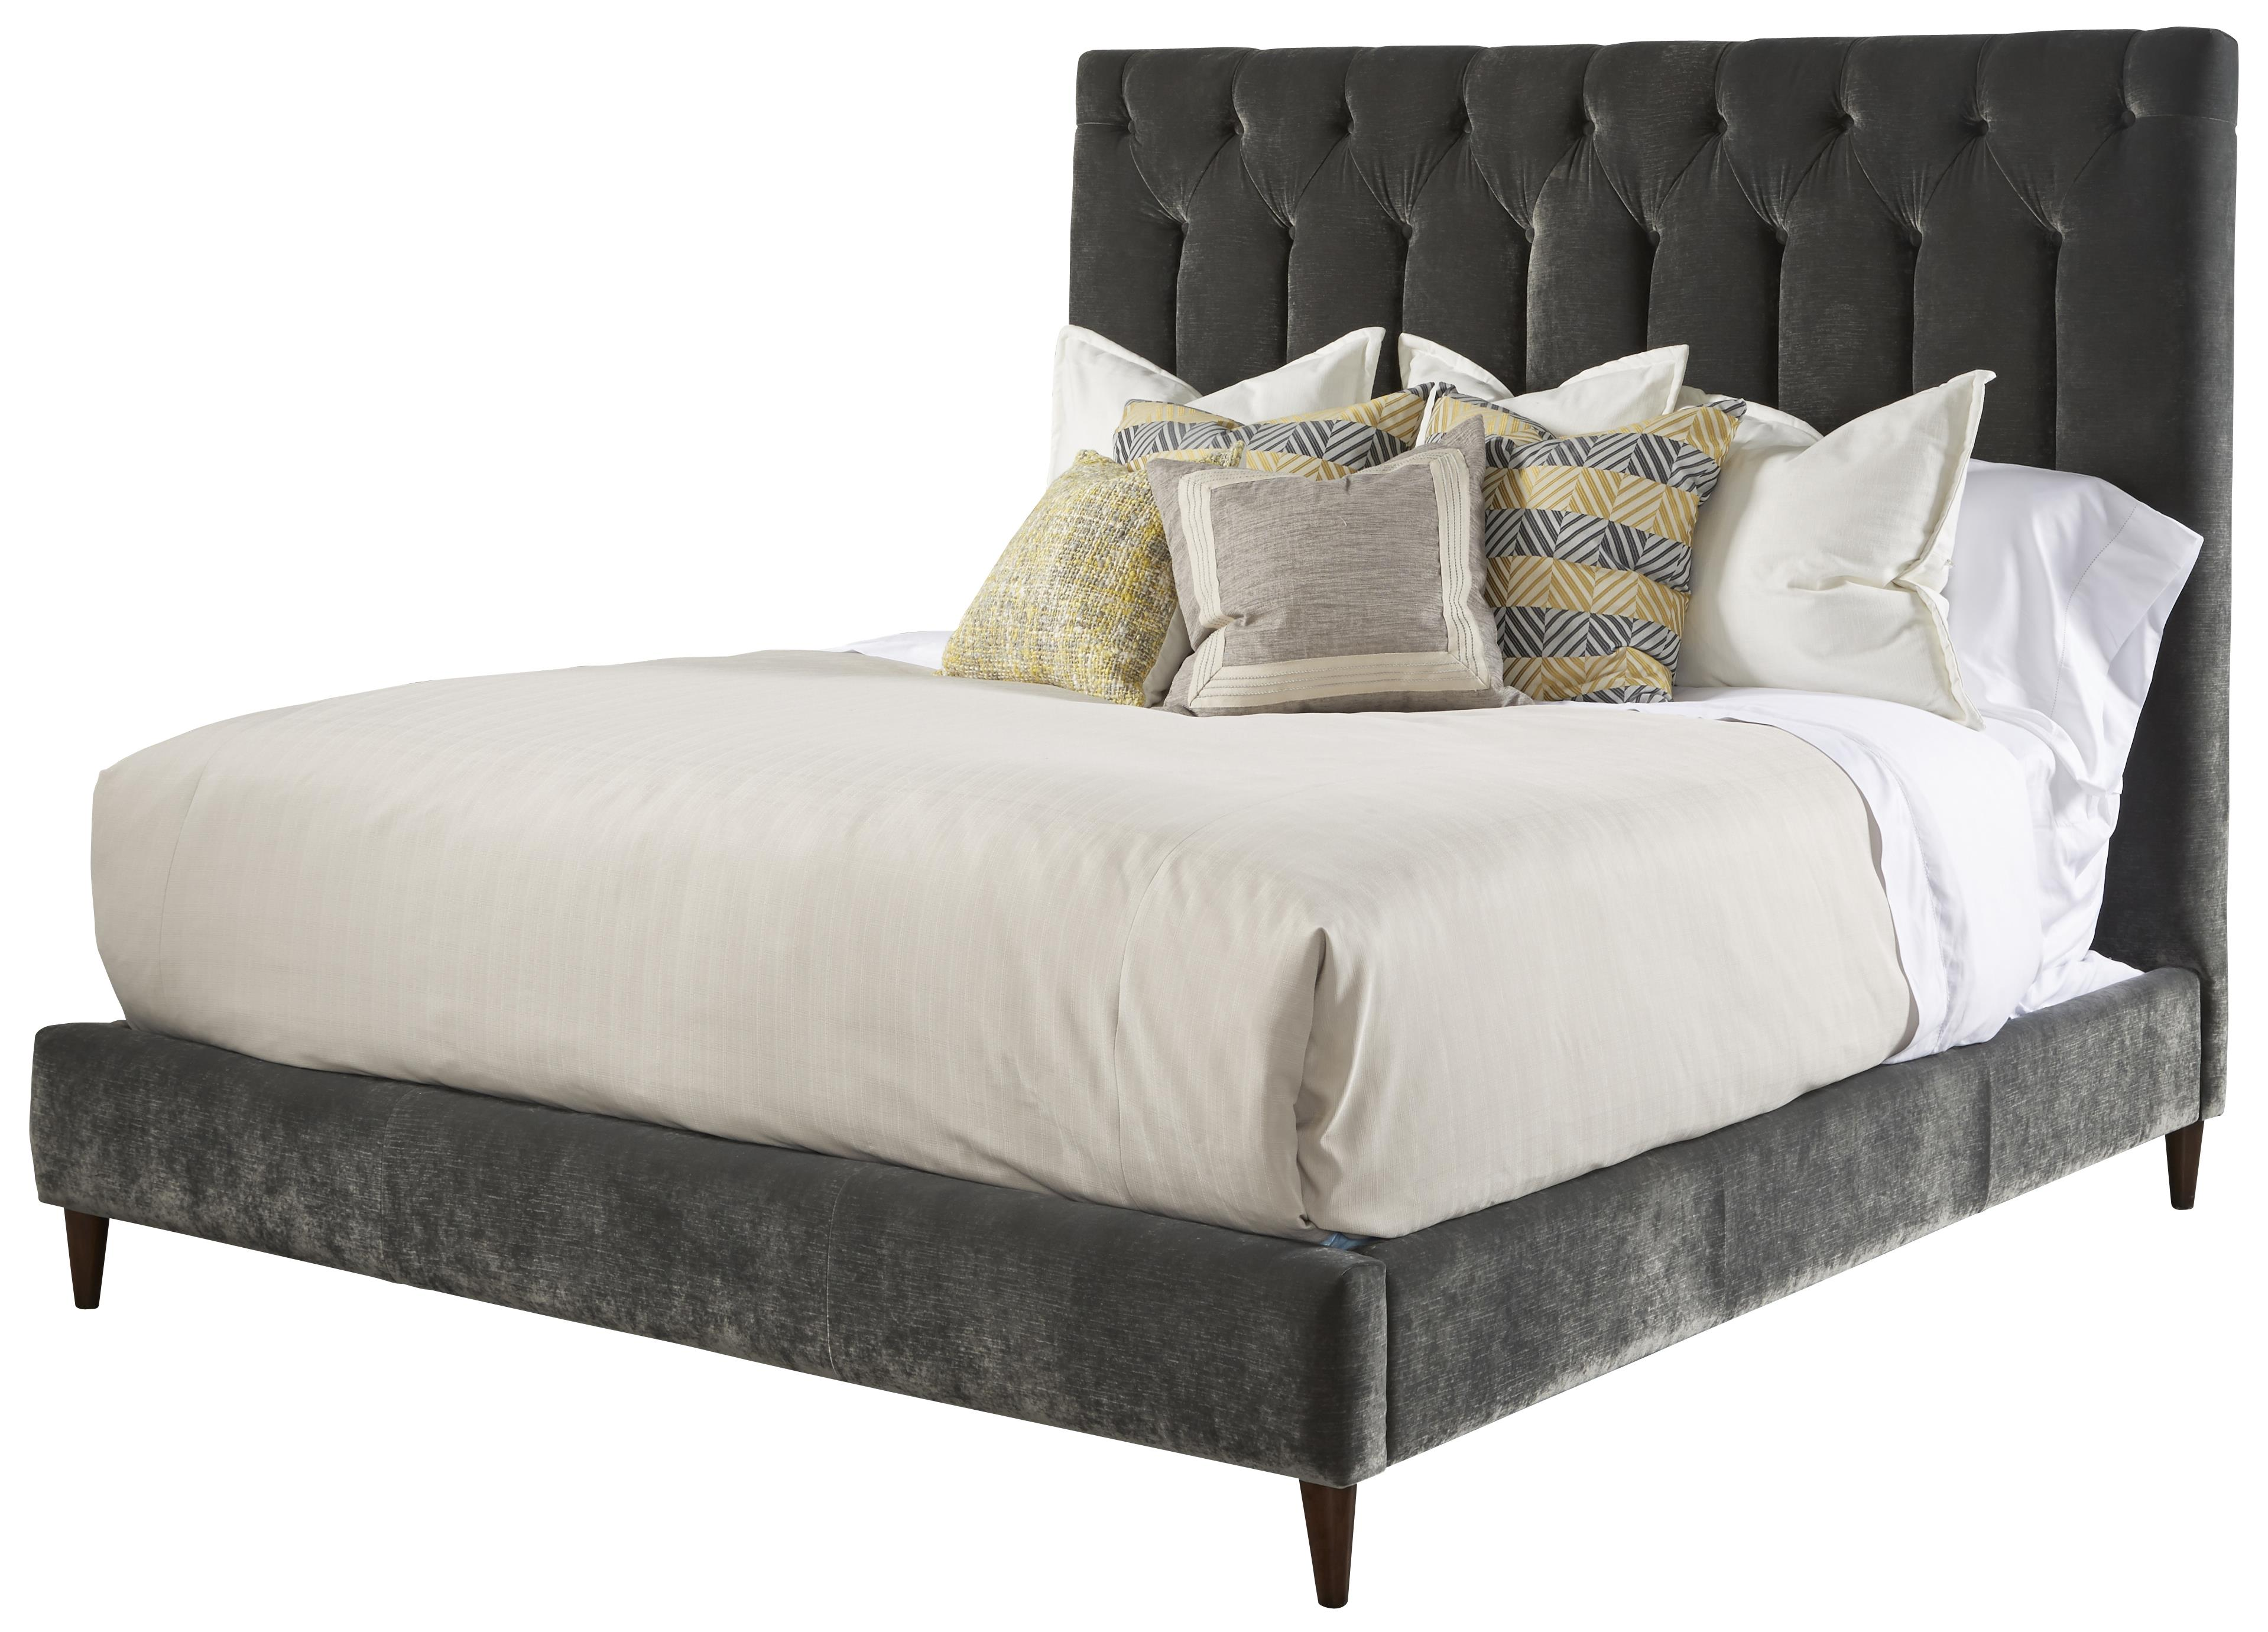 Belfort Signature Urban Treasures Queen 14th and U Upholstered Bed - Item Number: 223145-1812